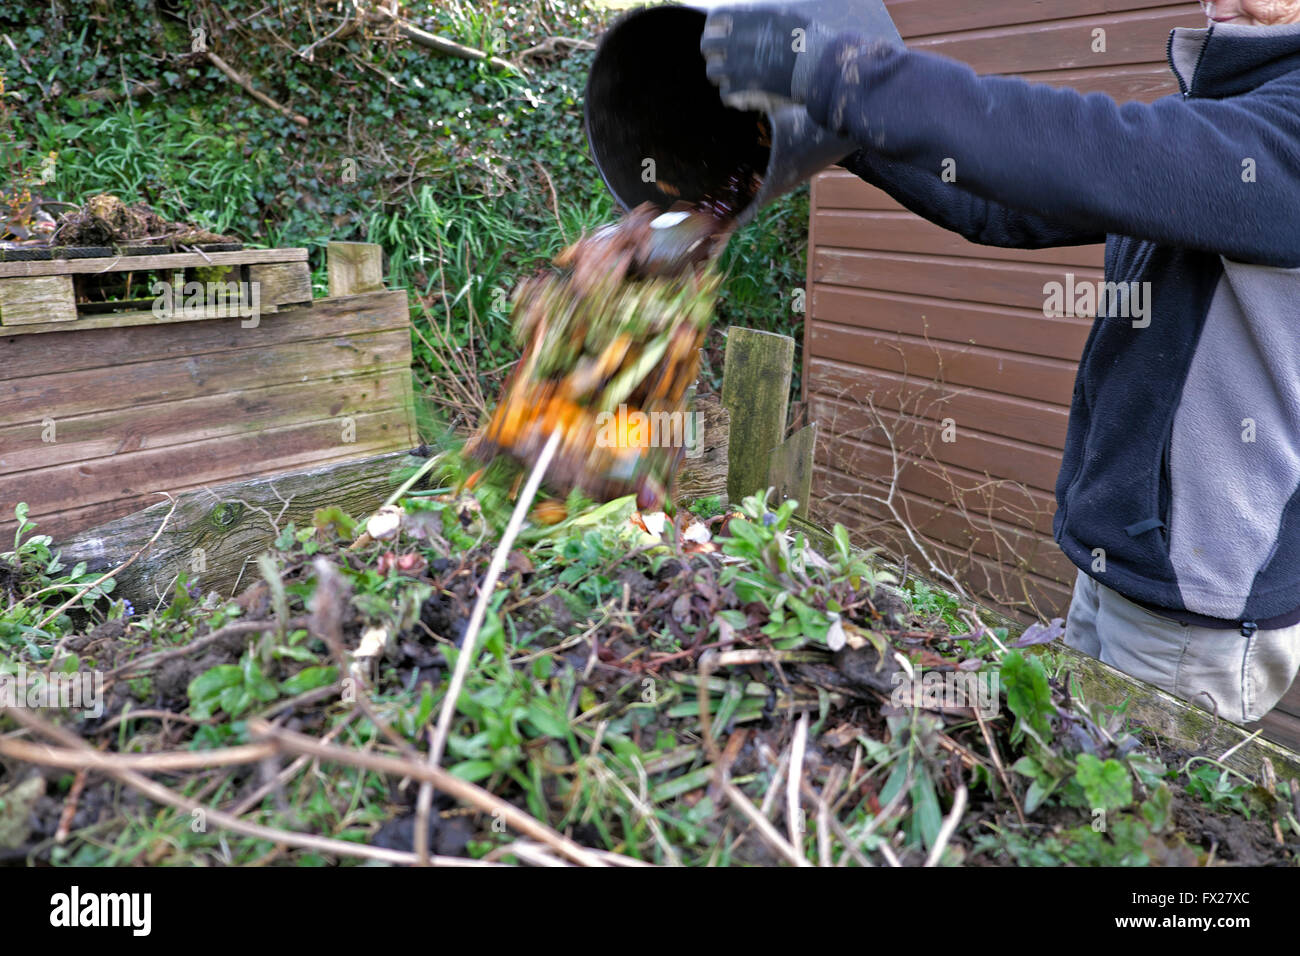 Woman emptying a bucket to recycle vegetable kitchen waste into a garden compost bin in springtime Wales UK  KATHY - Stock Image